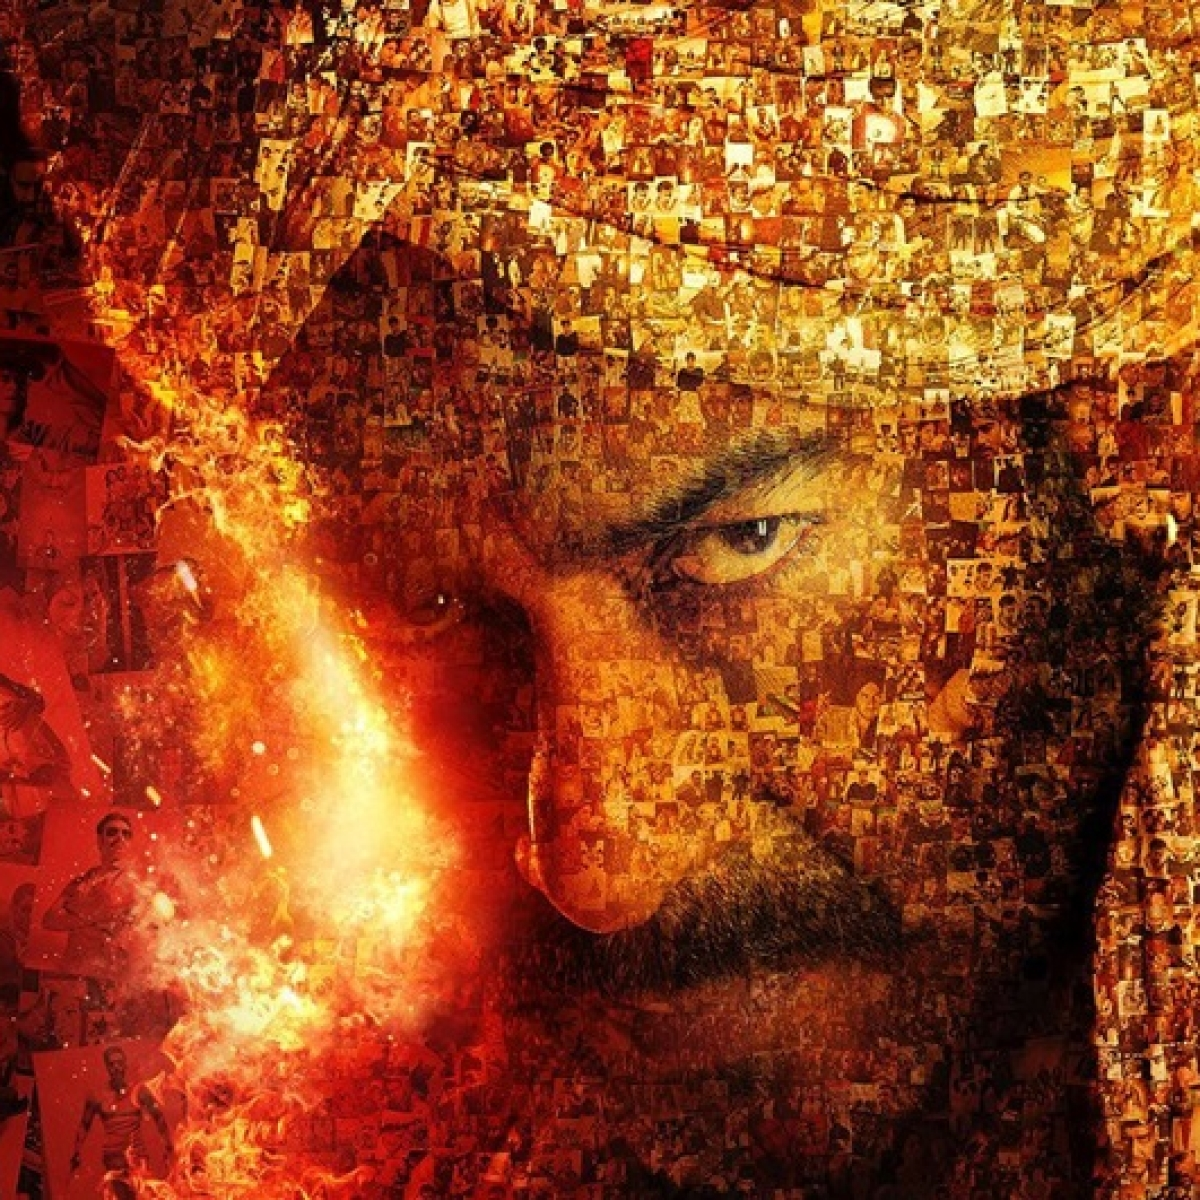 100 Films in 30 Years: SRK, Kajol congratulate Ajay Devgn as he hits a century with ' Tanhaji-The Unsung Warrior'